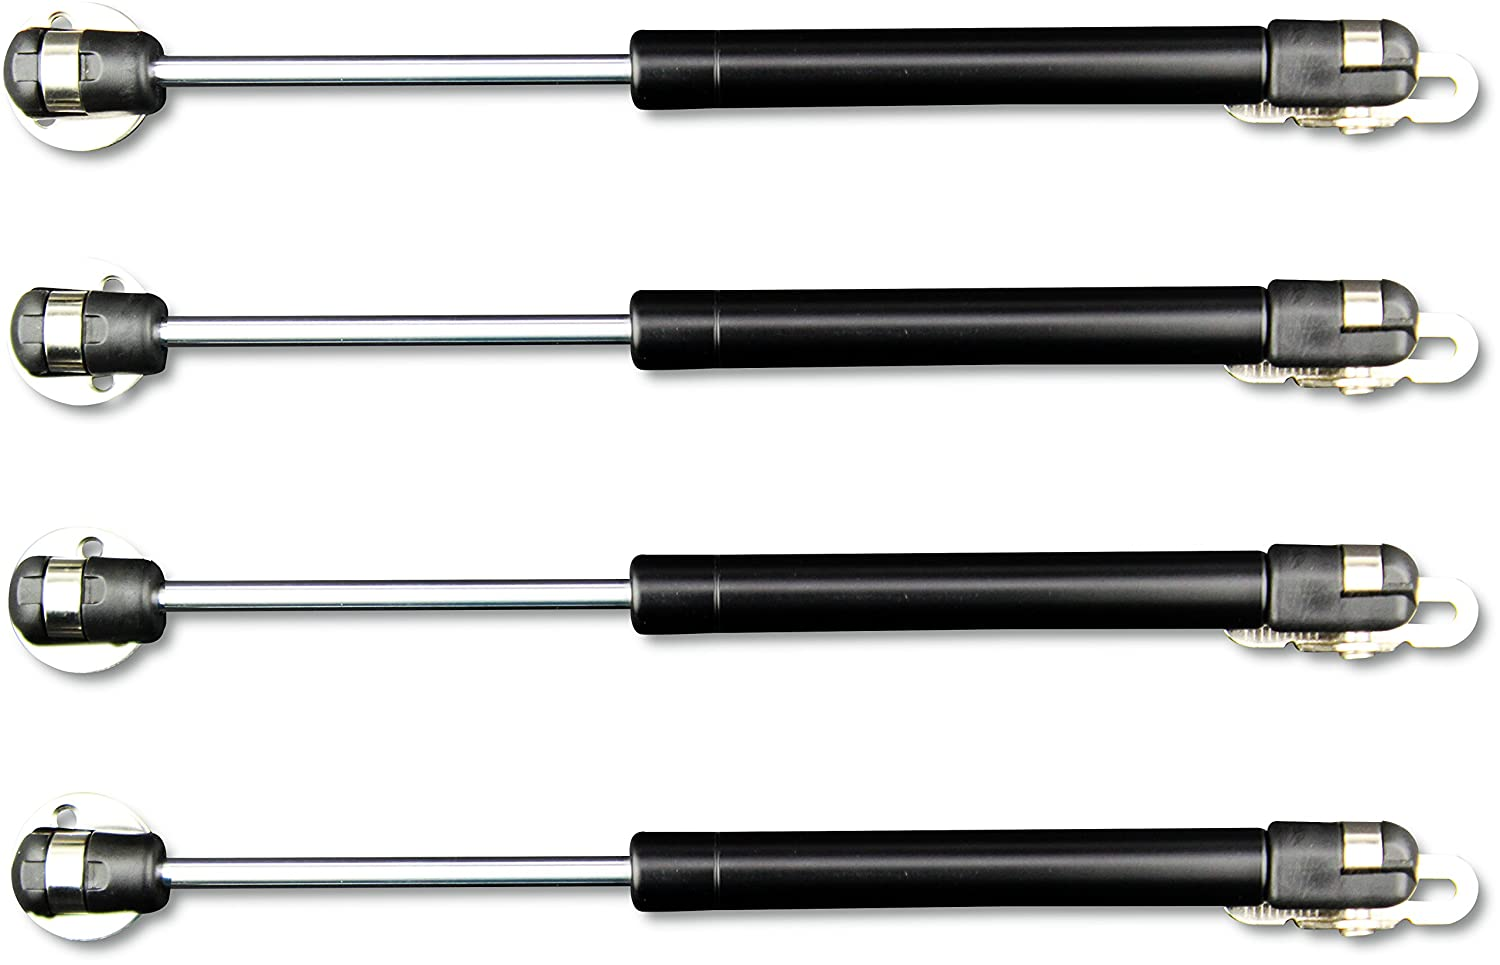 Apexstone 100N 22.5lb Gas Strut Gas Spring Lid Support Lift Support Lid Stay Gas Props Shocks Set of 4